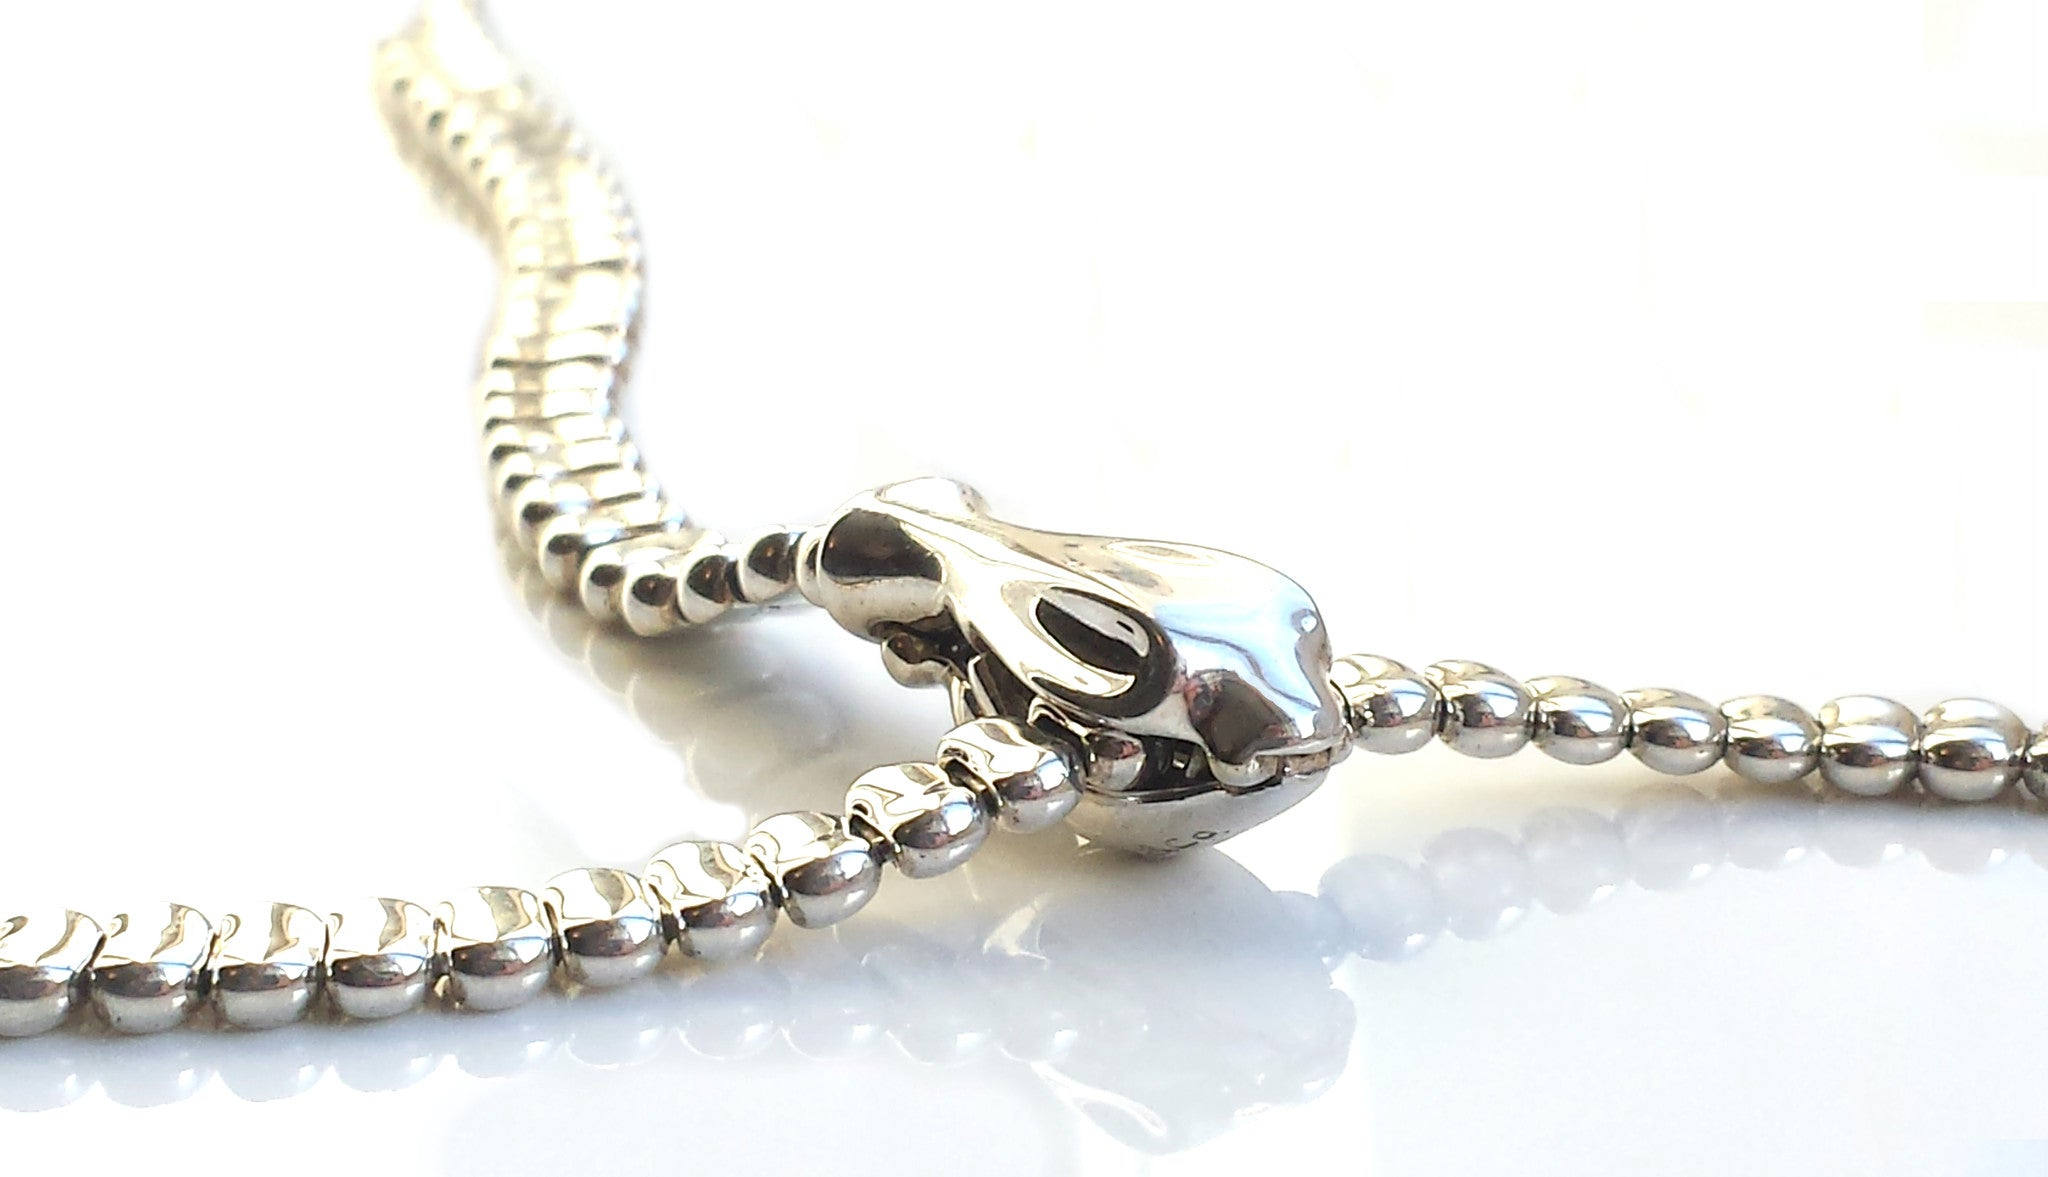 e160cf62a Tiffany & Co. Sterling Silver 28 inch Serpent / Snake Necklace by Peretti,  with Box & Case